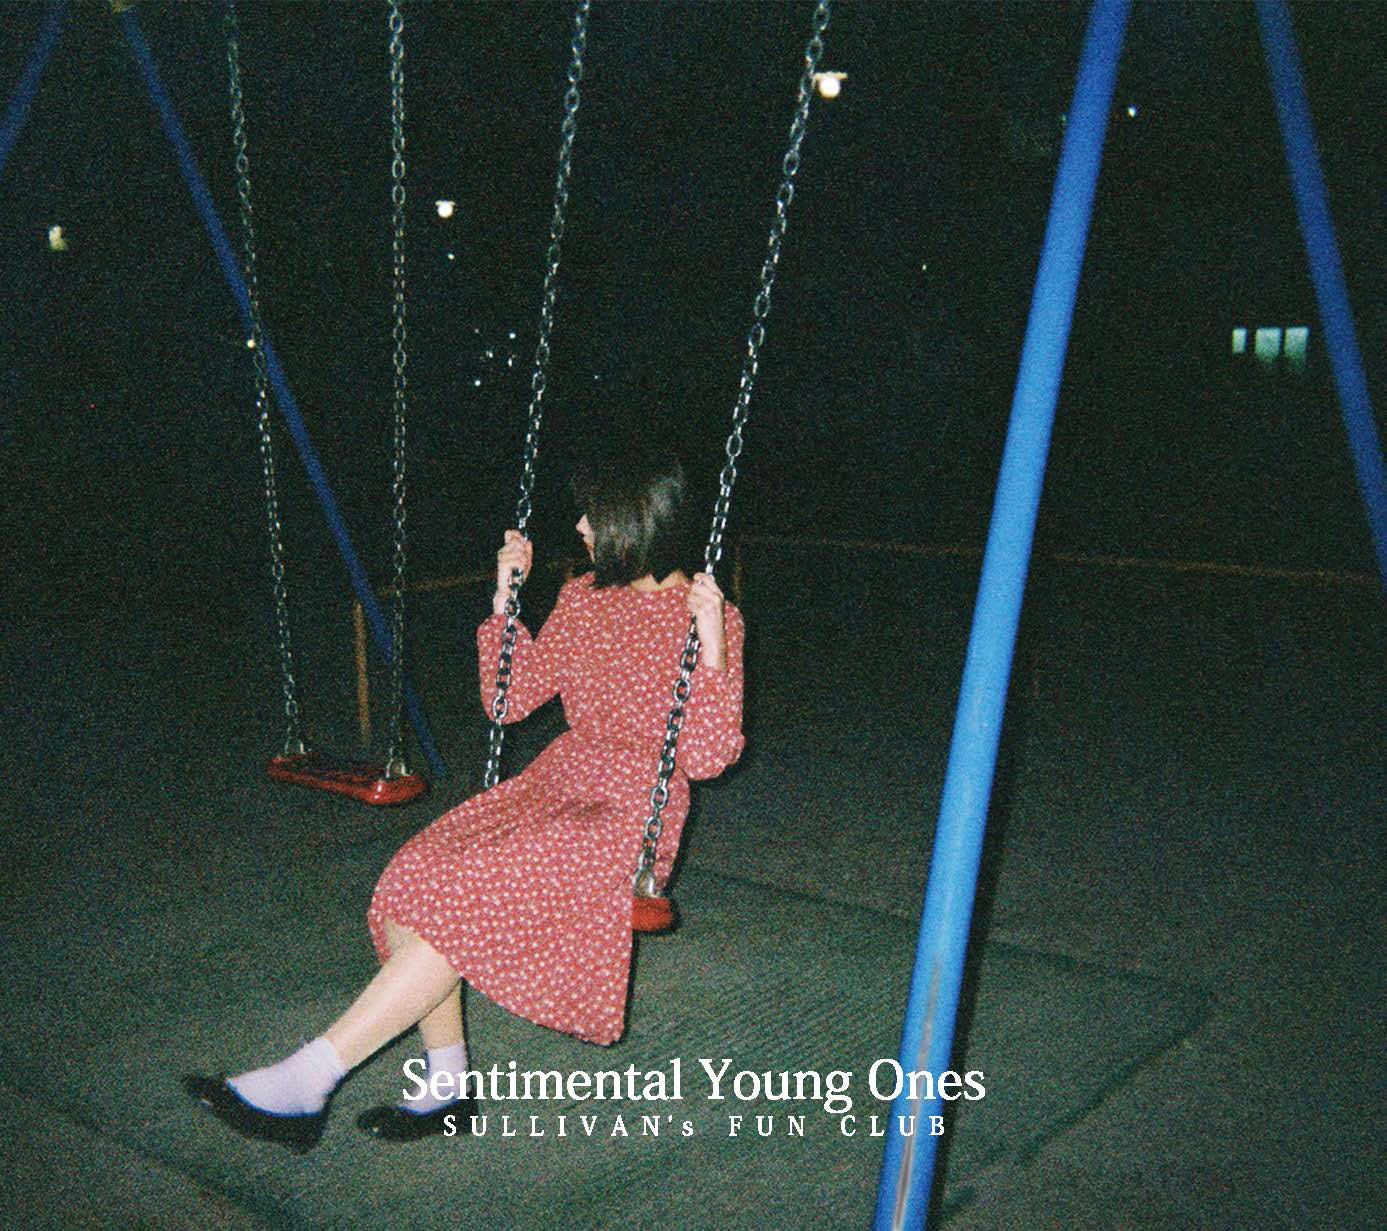 『Sentimental Young Ones』